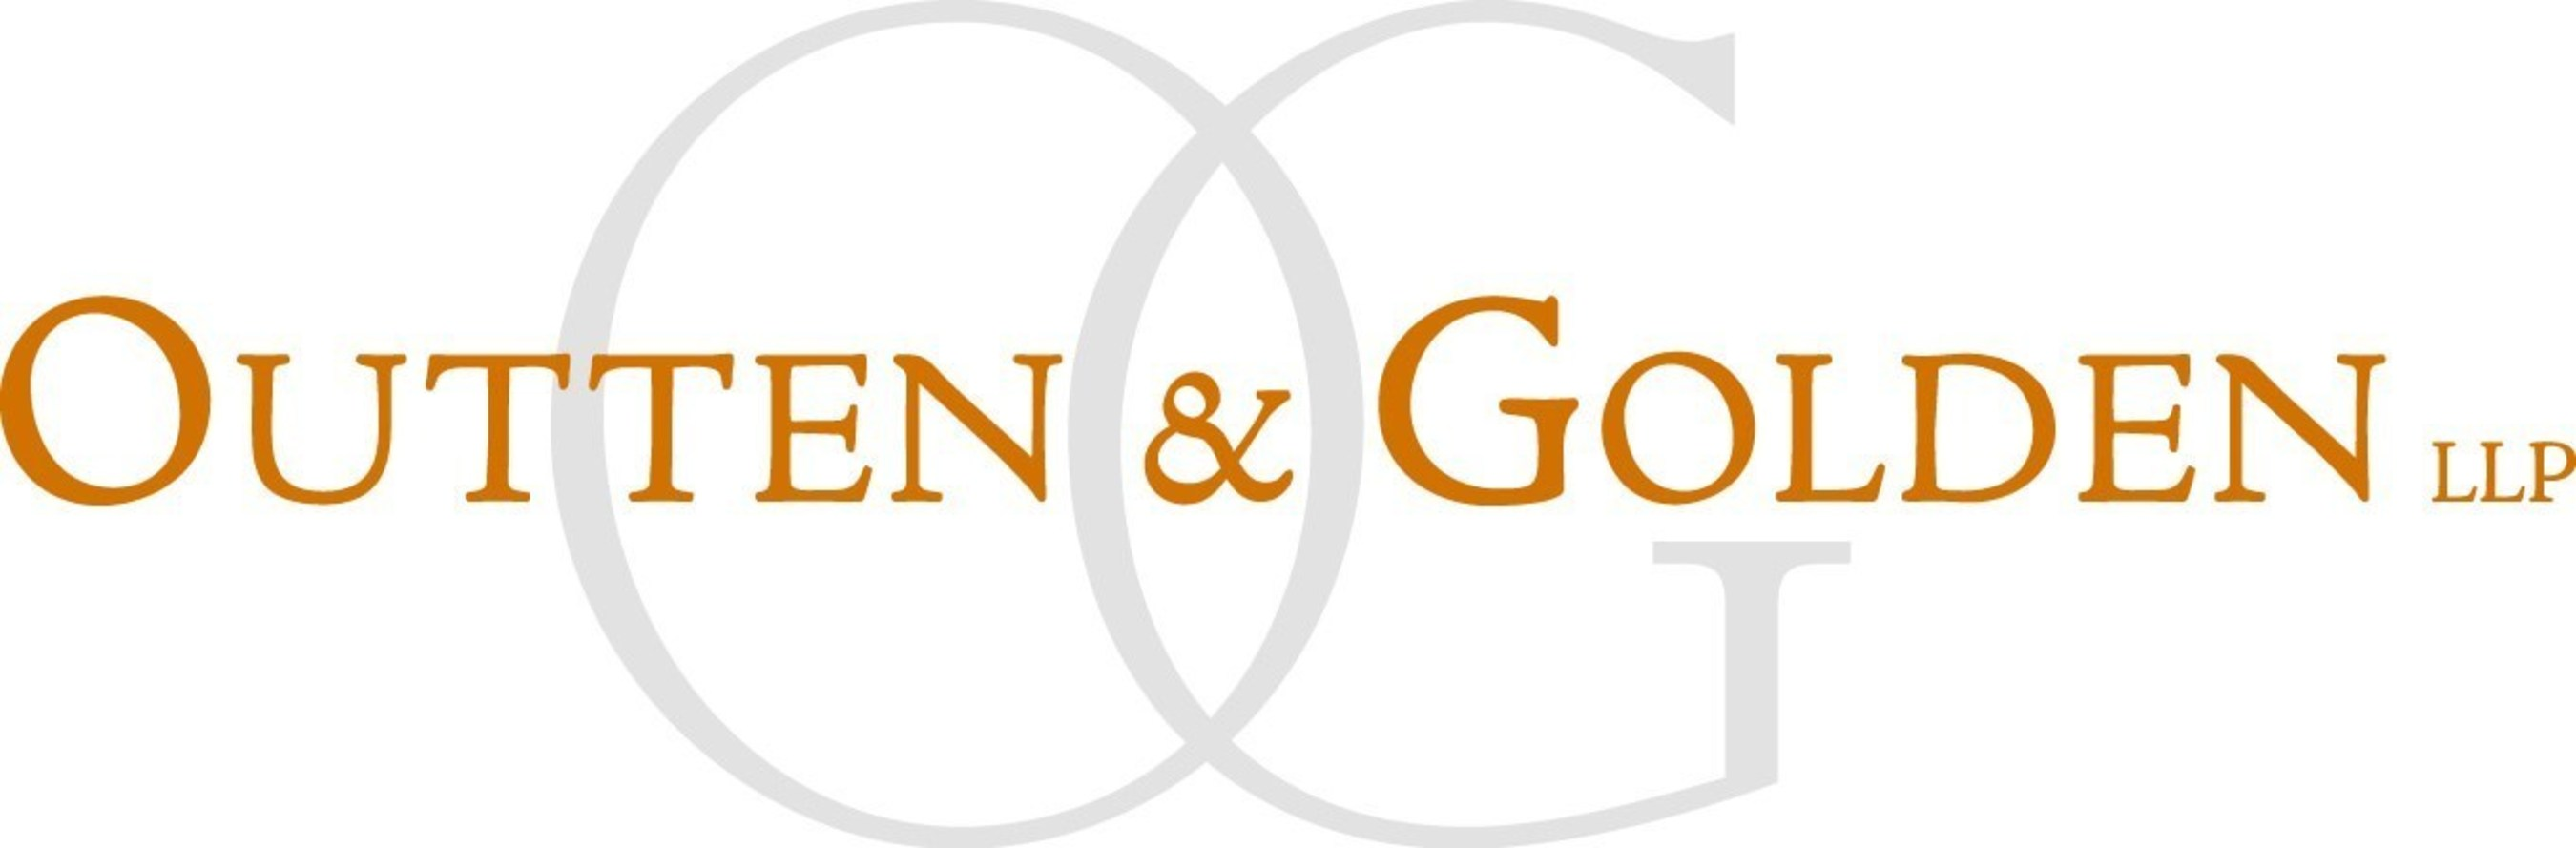 Outten & Golden Employment Law Firm Recognized With 18 Super.